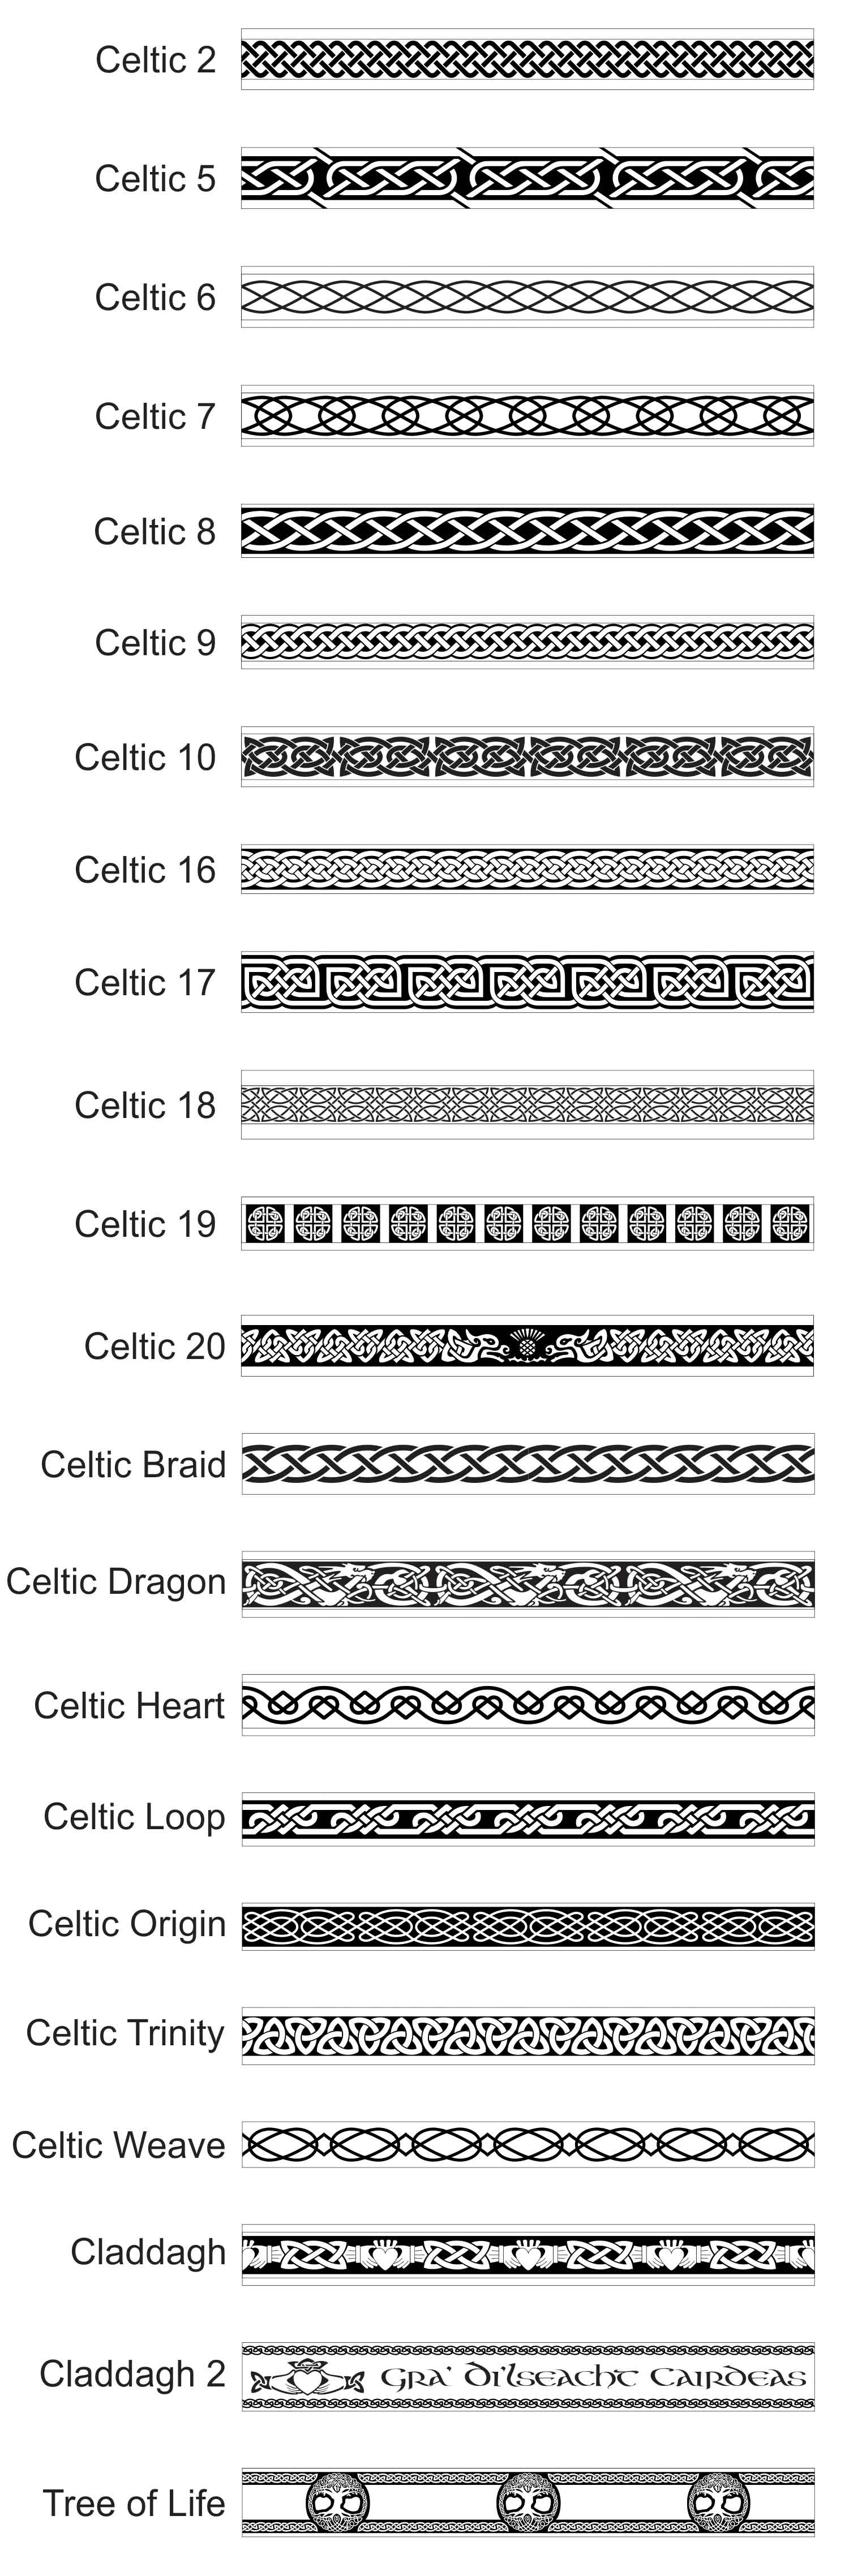 Celtic Patterns For Rings And Bands Revolution Jewelry Designs